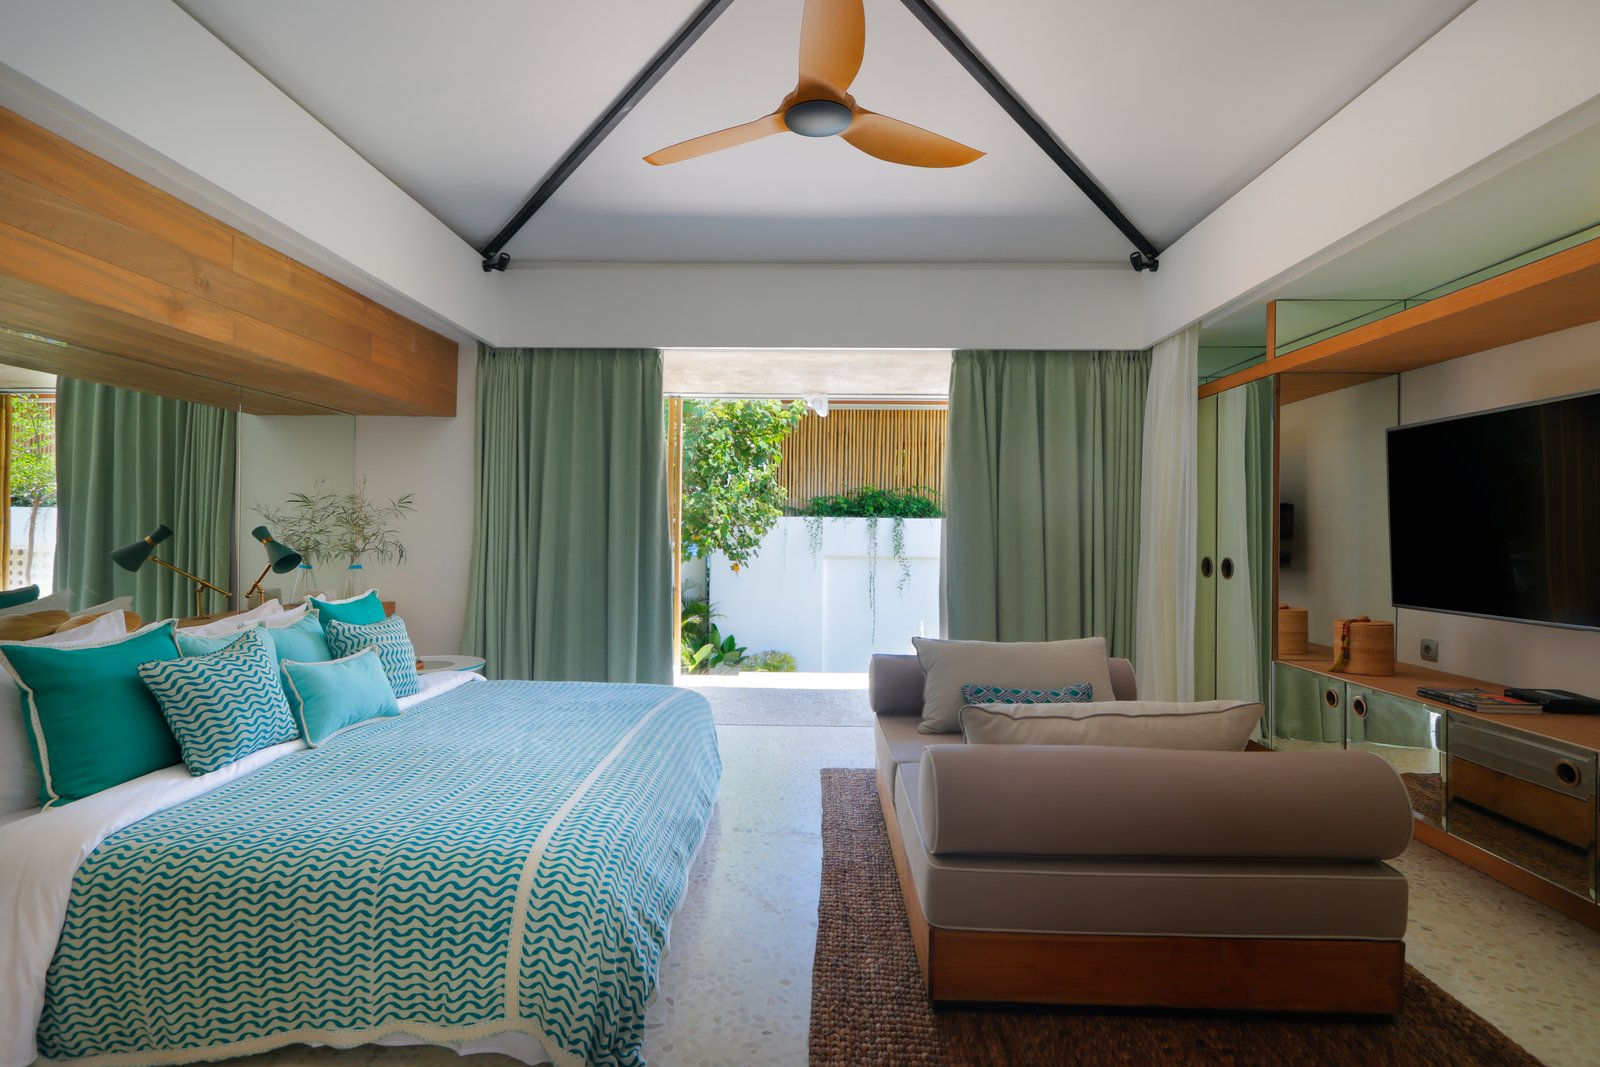 Bedroom, Bed, Night Stands, Rug, Table, and Wardrobe Each bedroom opens to a terrace.    Best Bedroom Wardrobe Rug Photos from Fall in Love With Bali at This Tropical, Modern Retreat